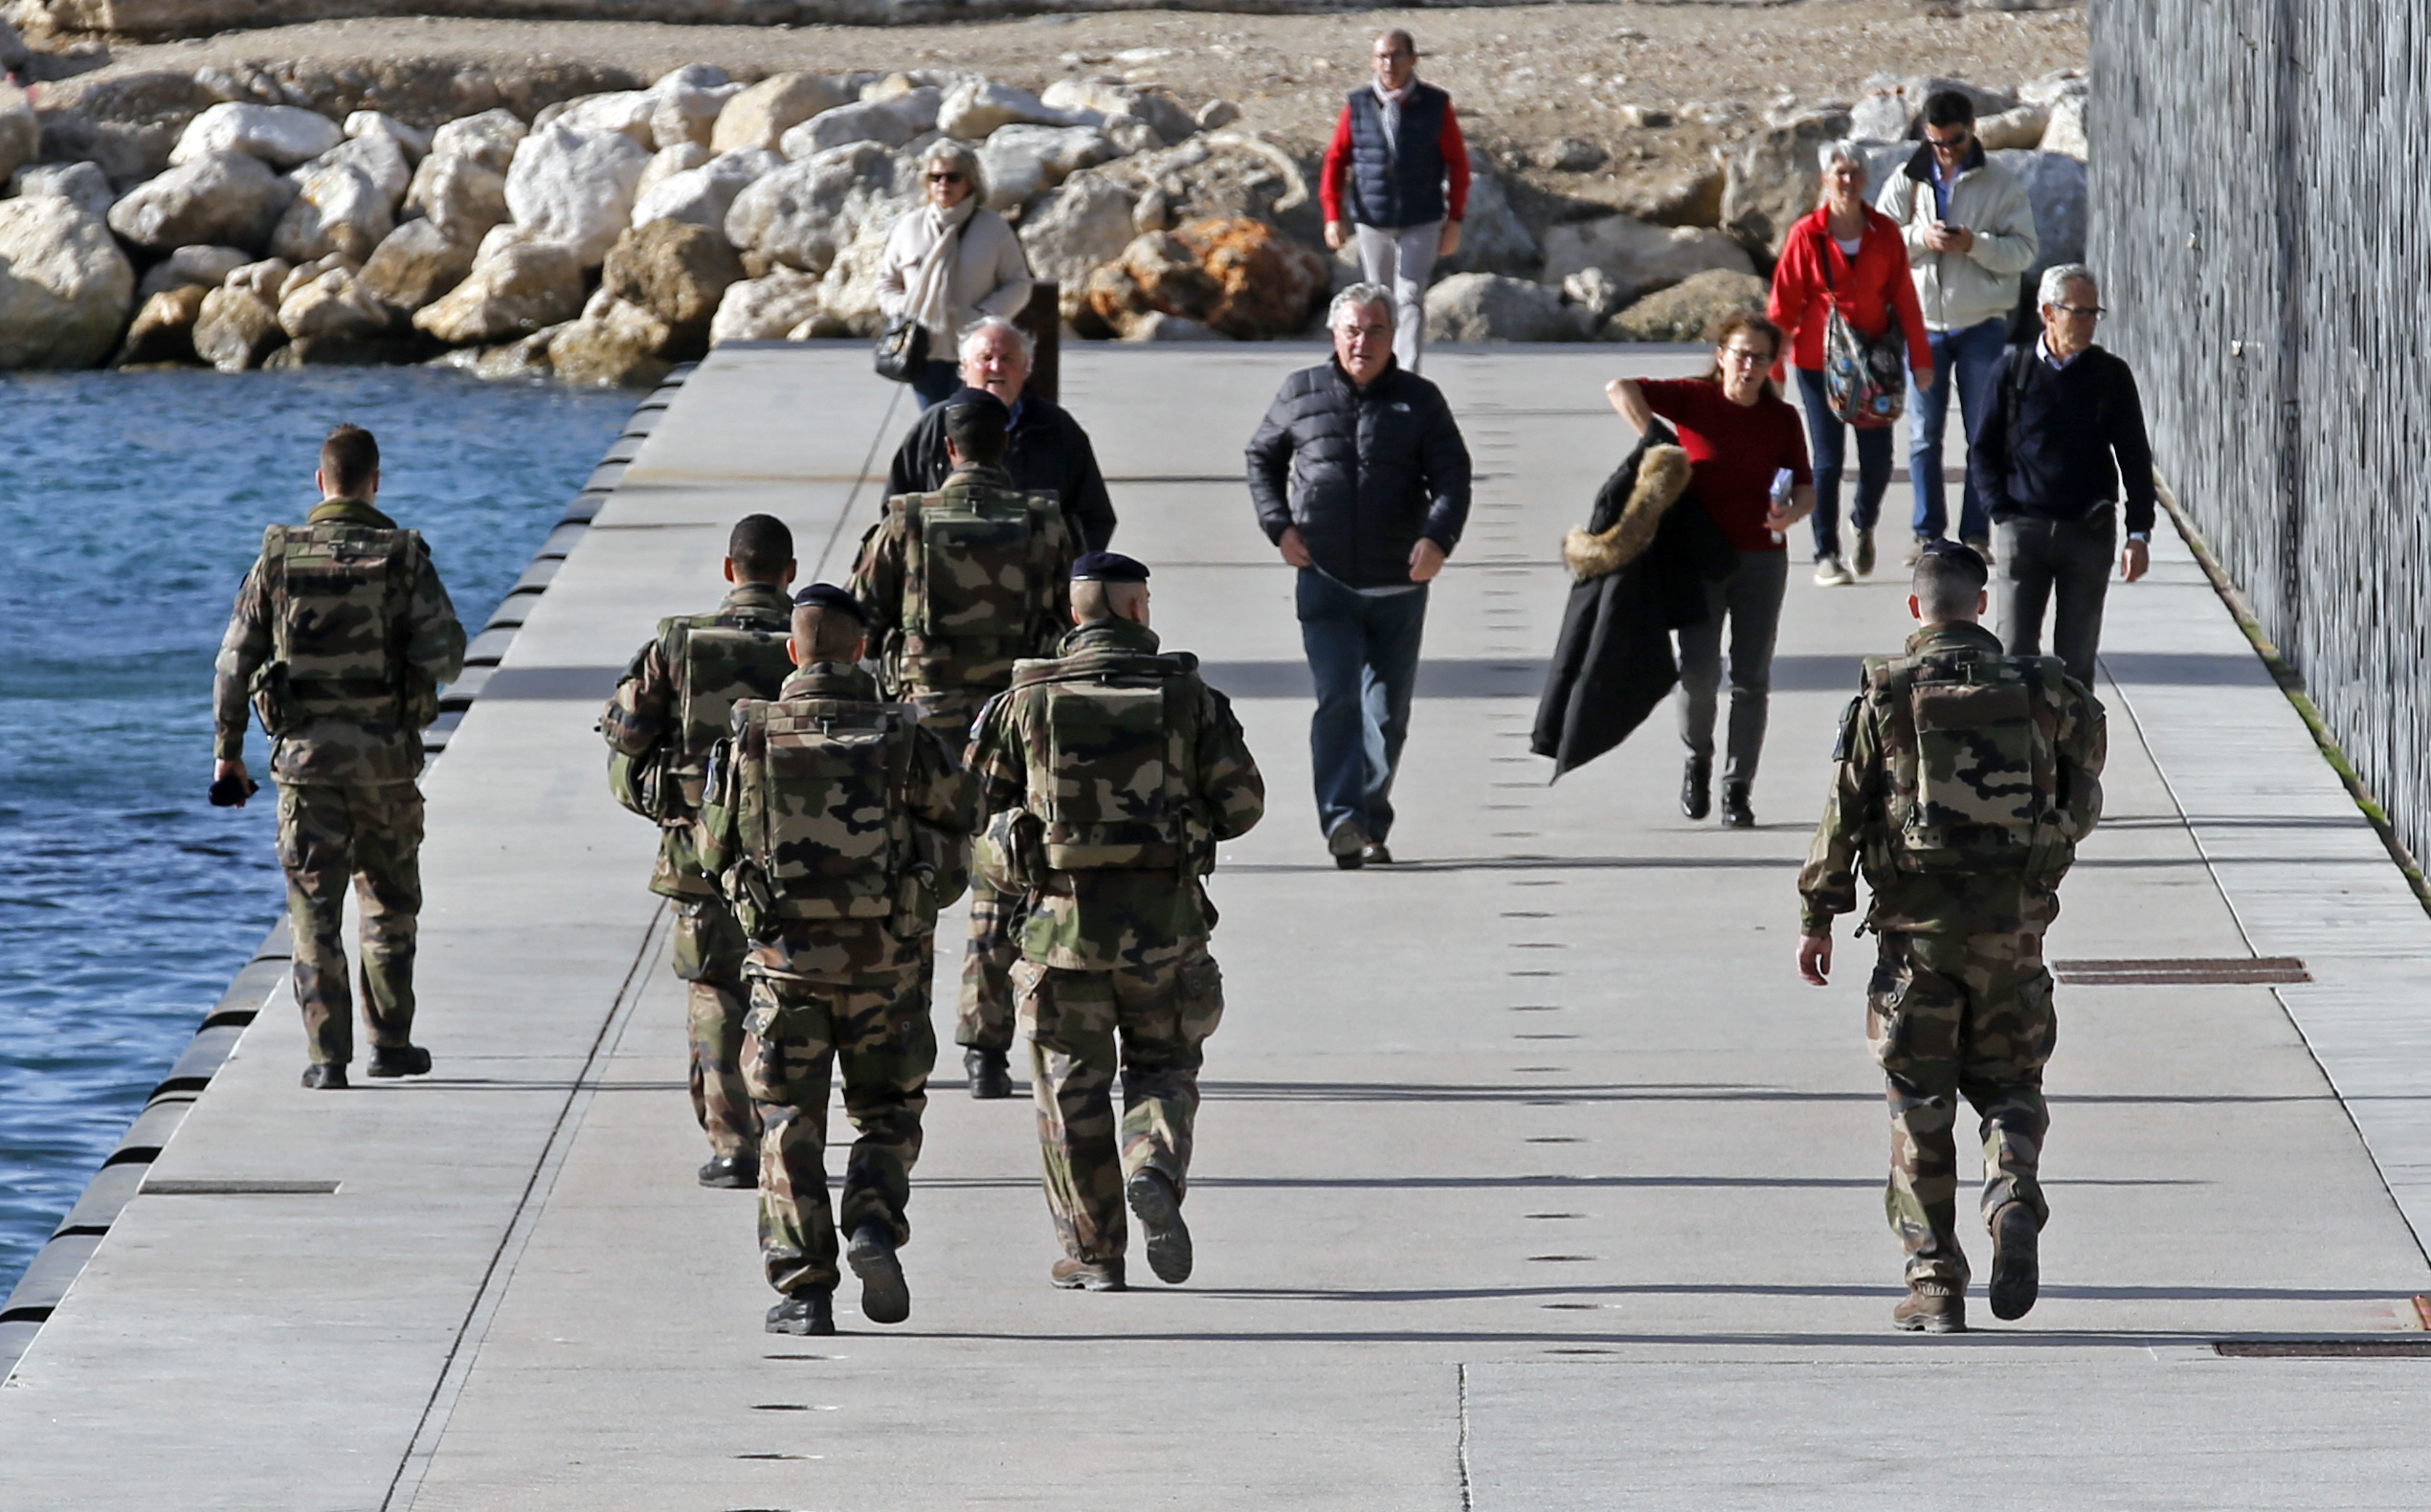 French soldiers patrol near the Museum of Civilizations from Europe and the Mediterranean (MuCEM) in Marseille, France, as security increases after last Friday's deadly attacks in Paris, Nov. 20, 2015.